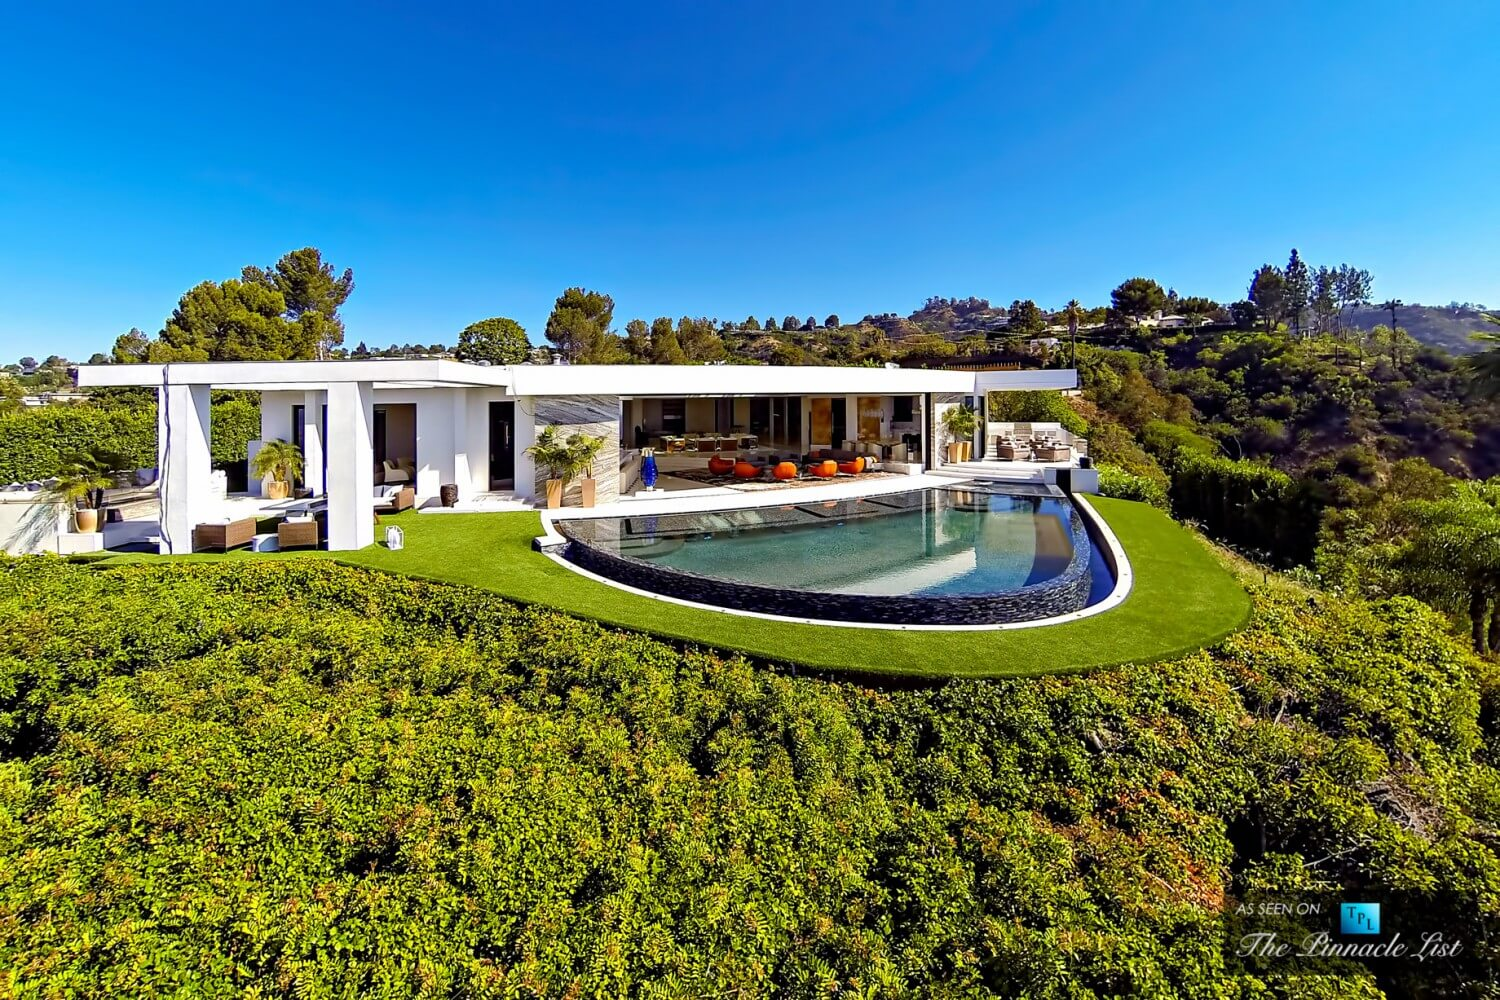 063-85-Million-Luxury-Residence-1181-North-Hillcrest-Beverly-Hills-CA